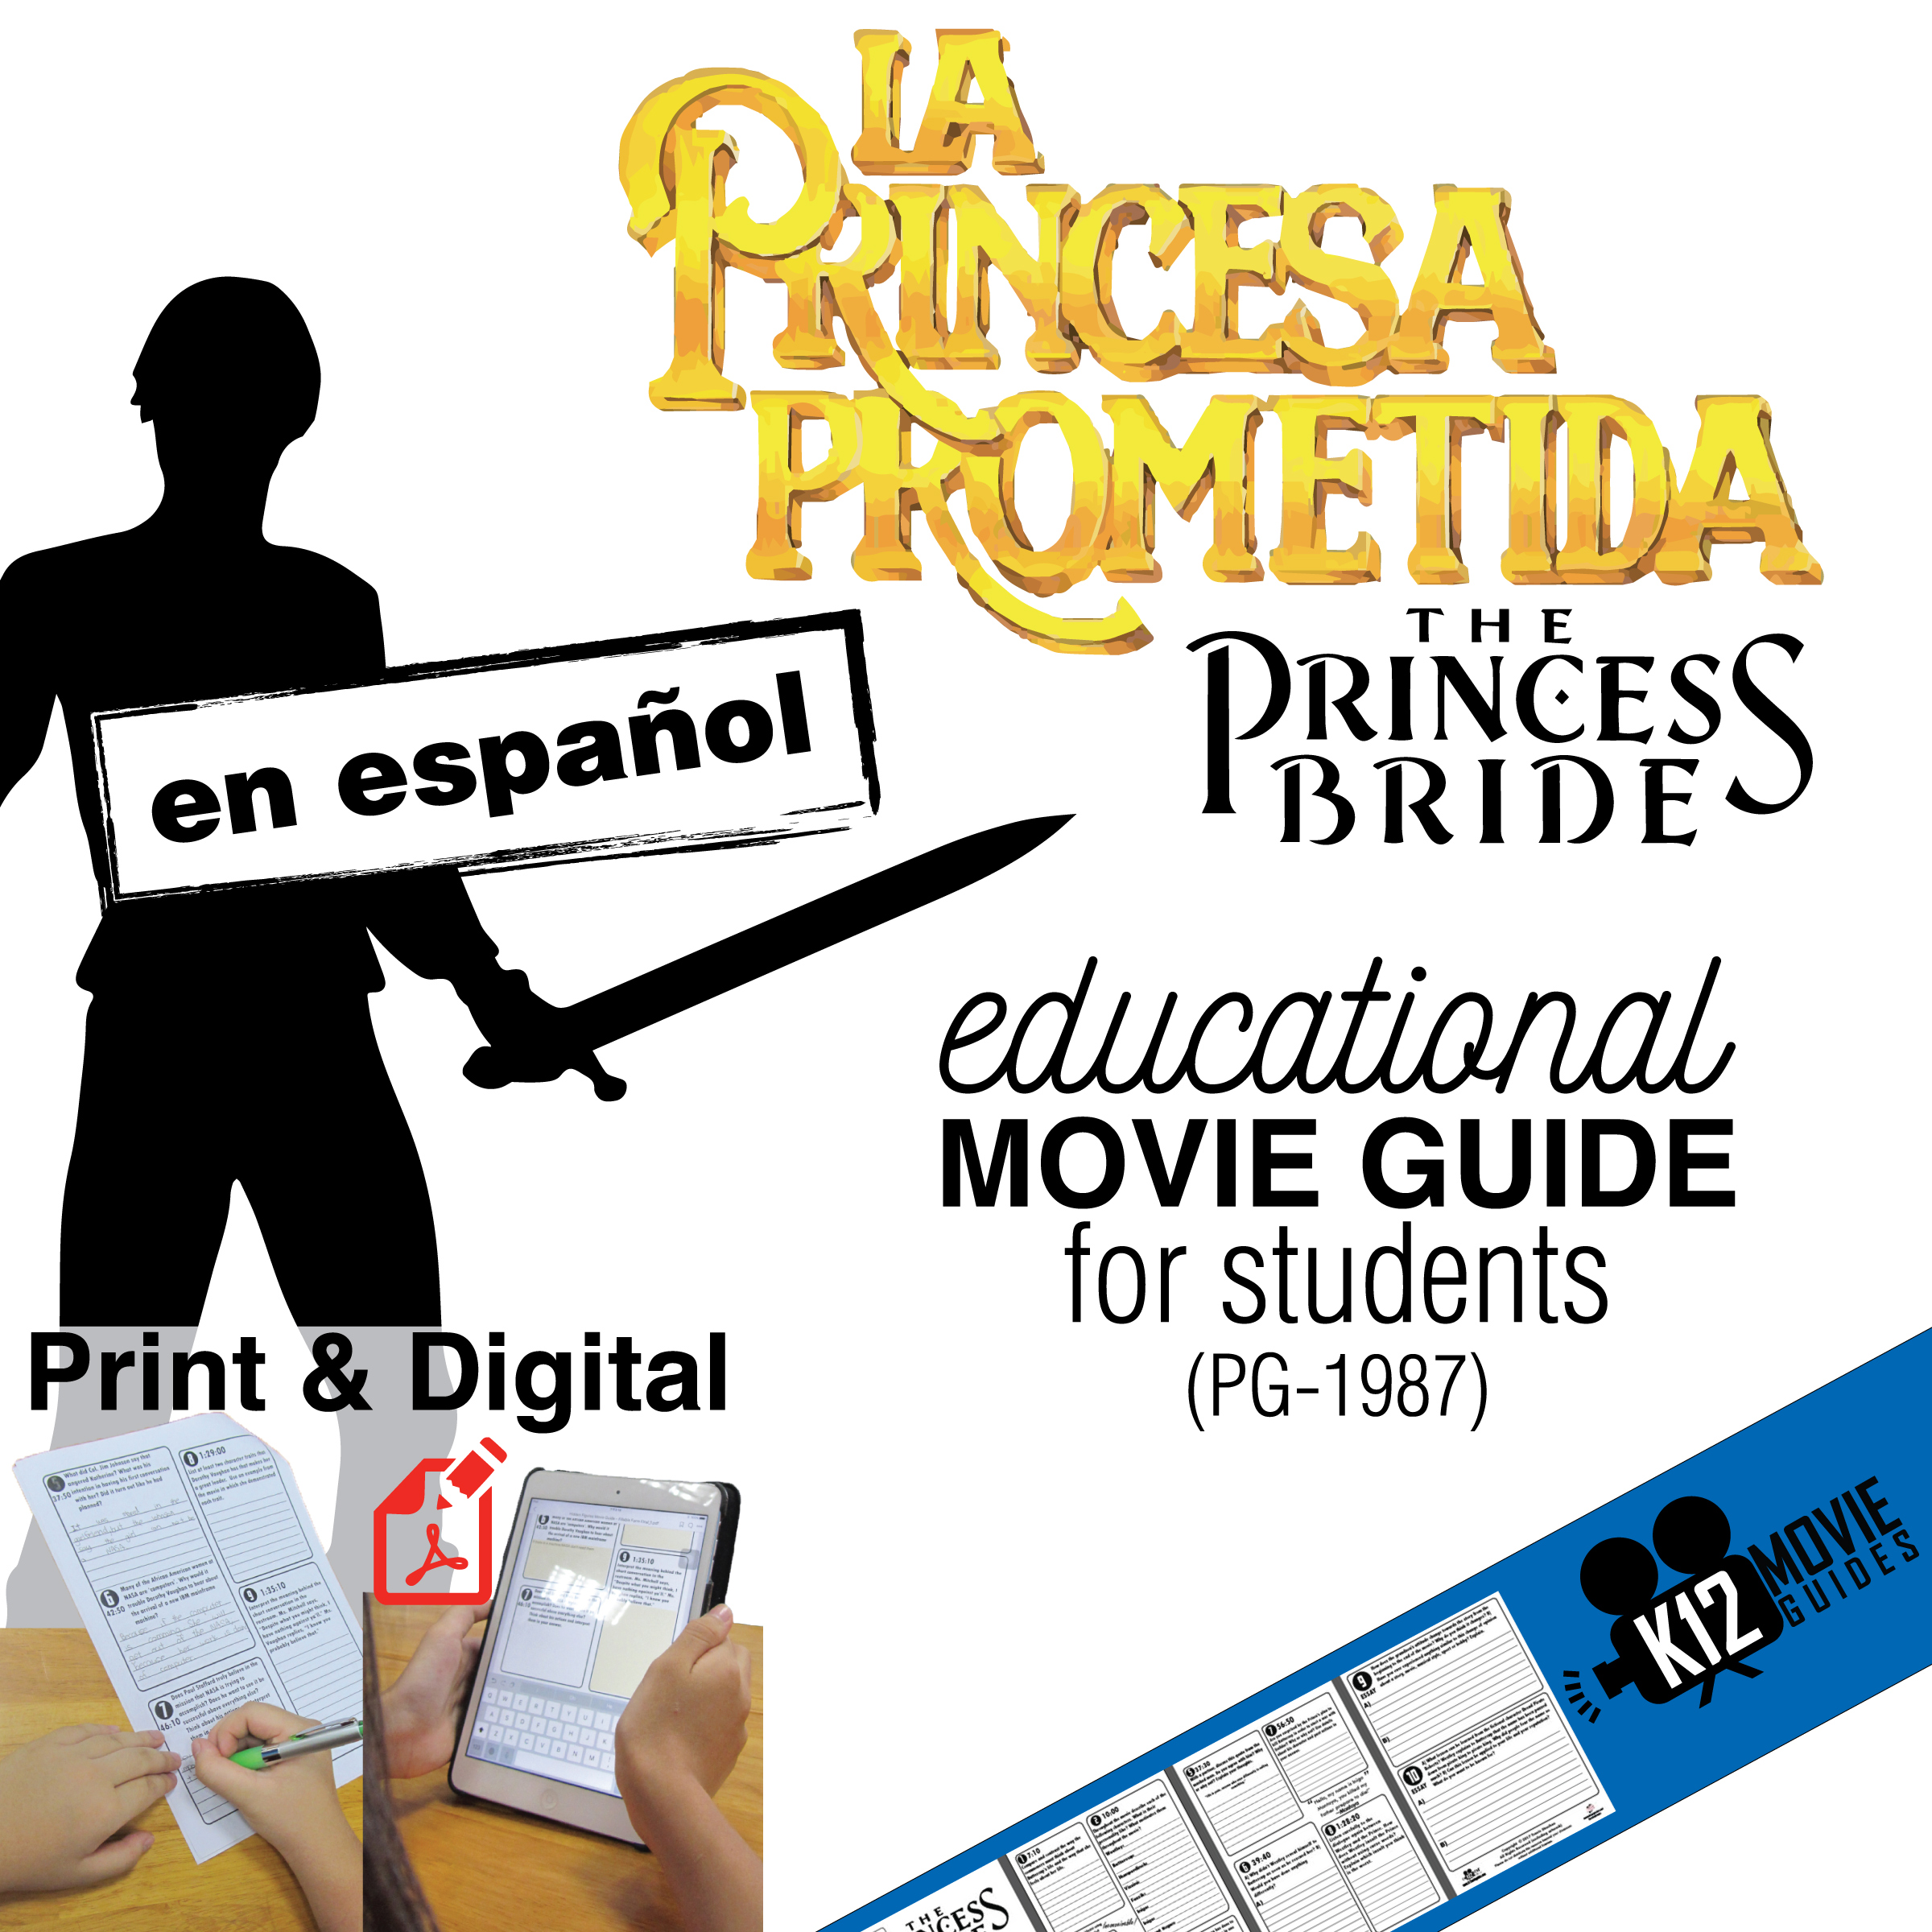 The Princess Bride Movie Guide | La Princesa Prometida Guía de película en Español